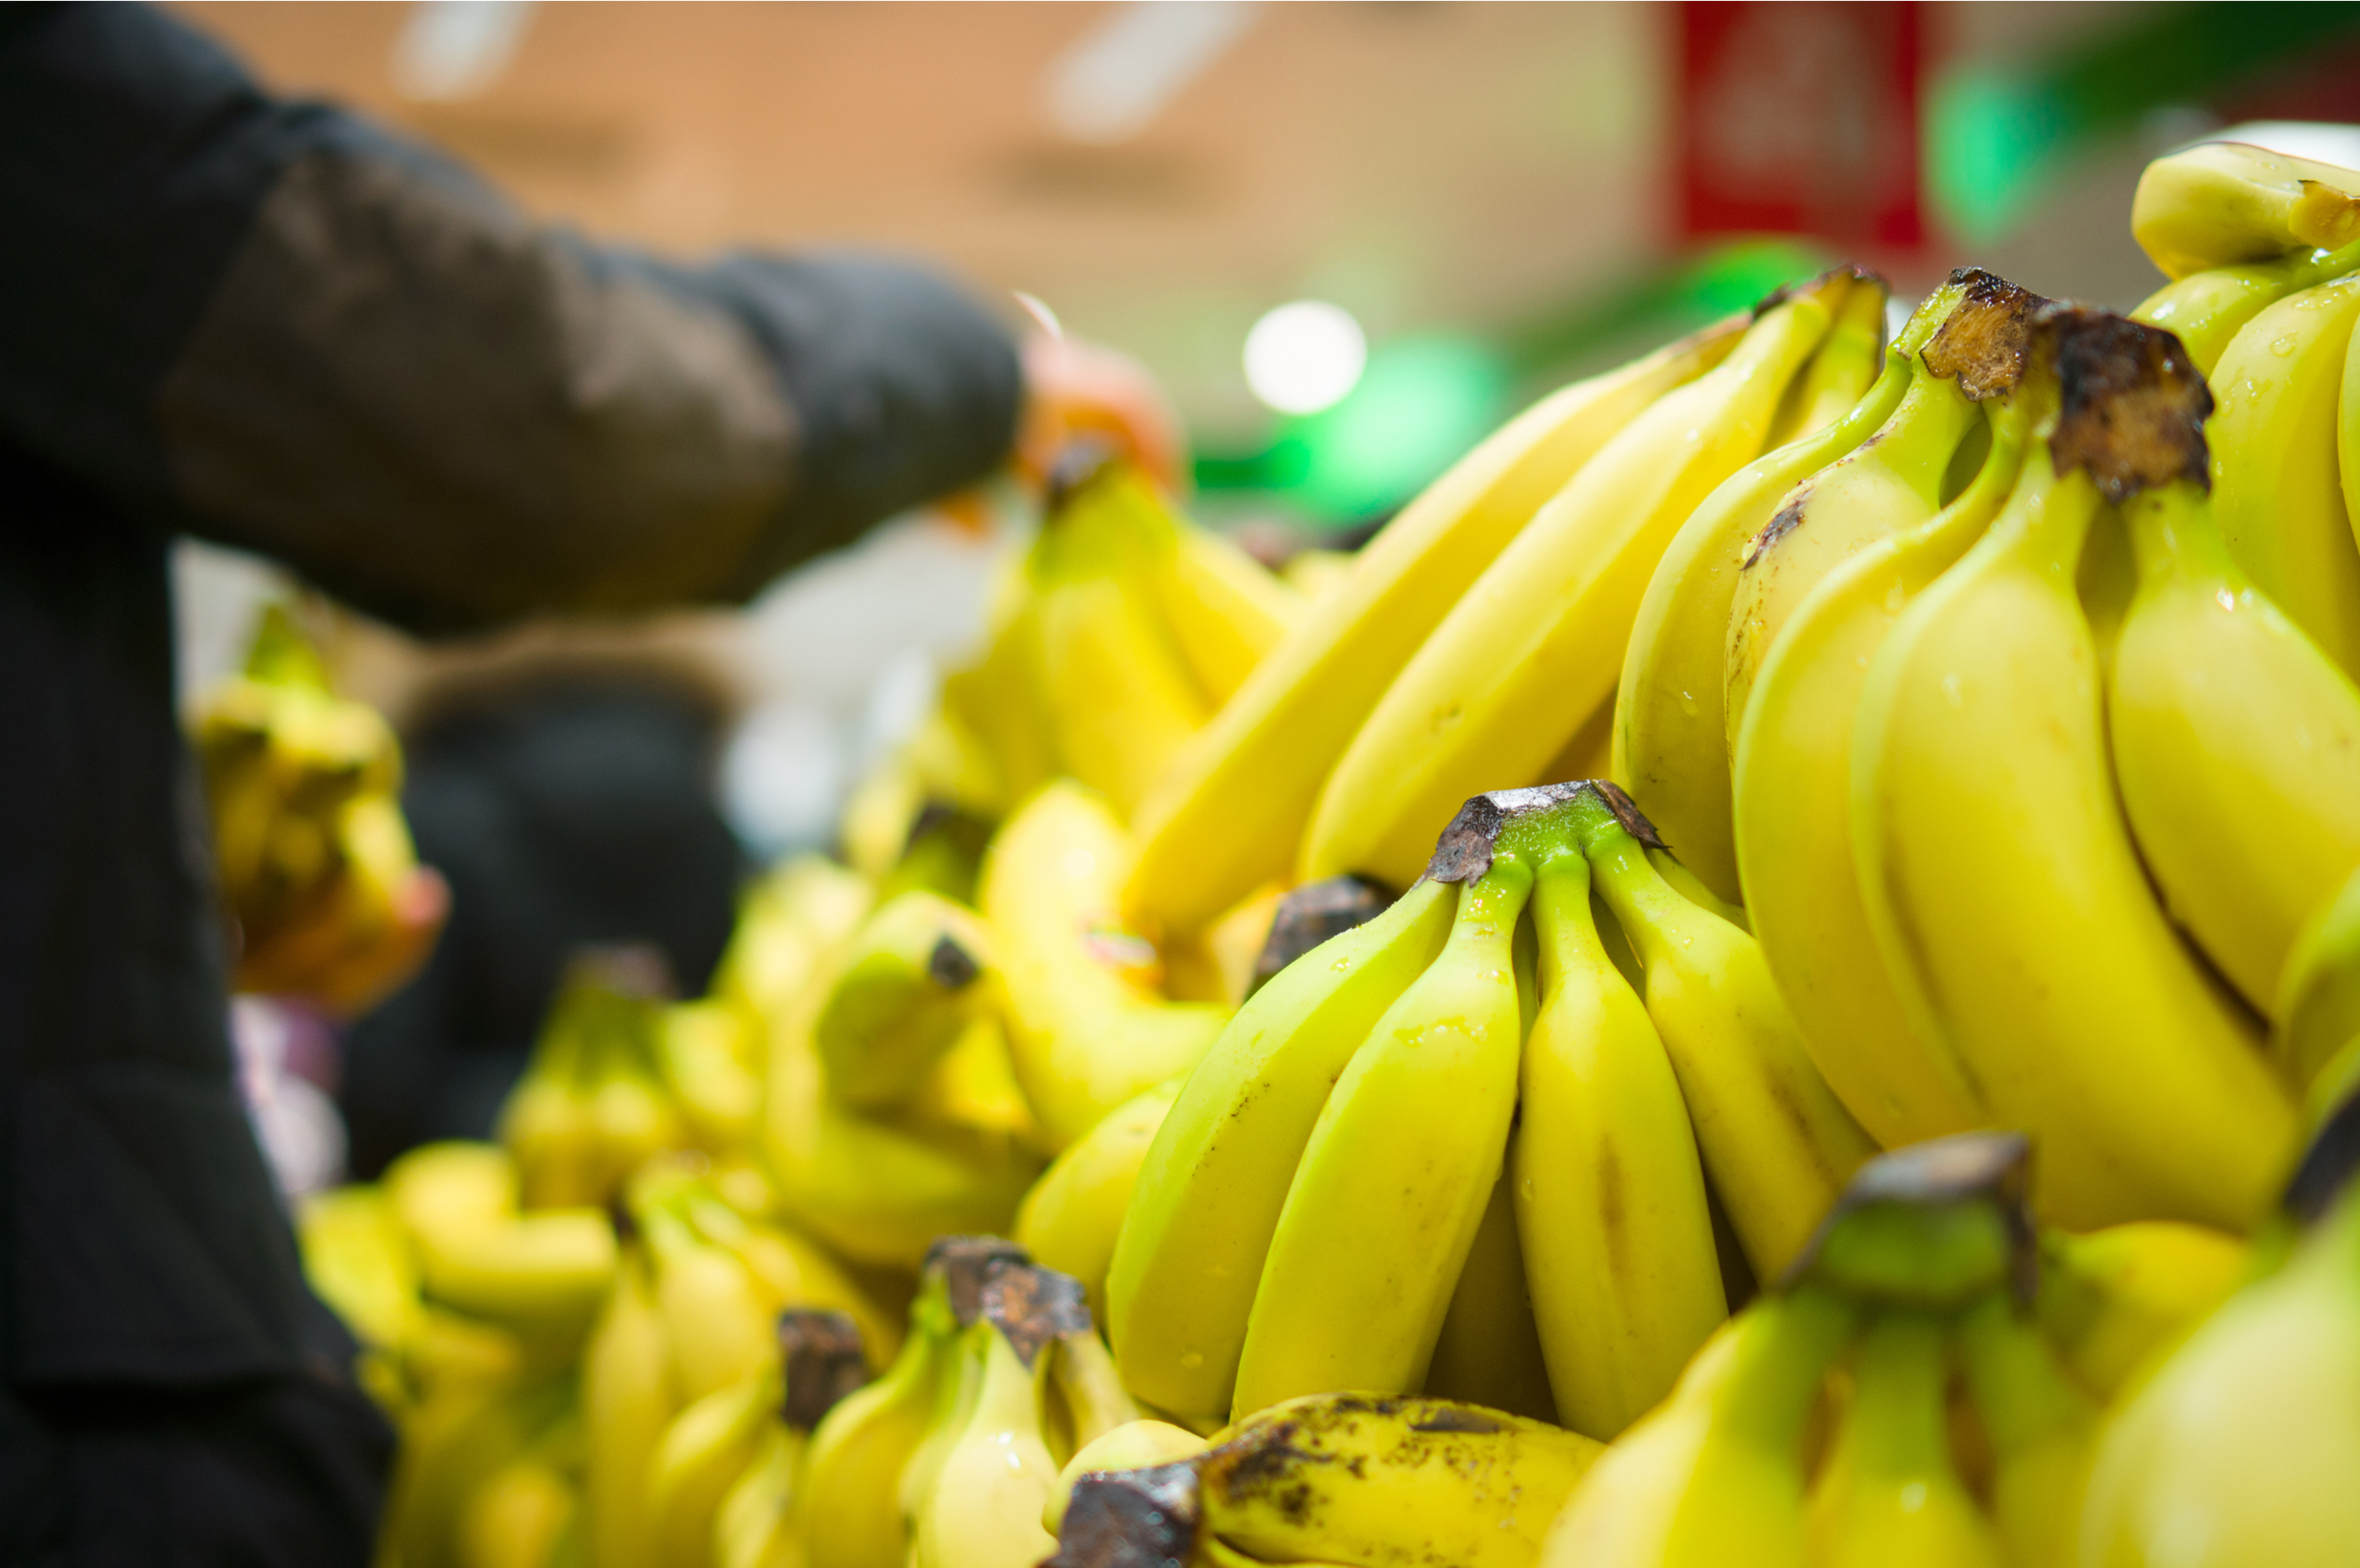 Someone Left a Whole Lot of Cocaine in Safeway Banana Shipments